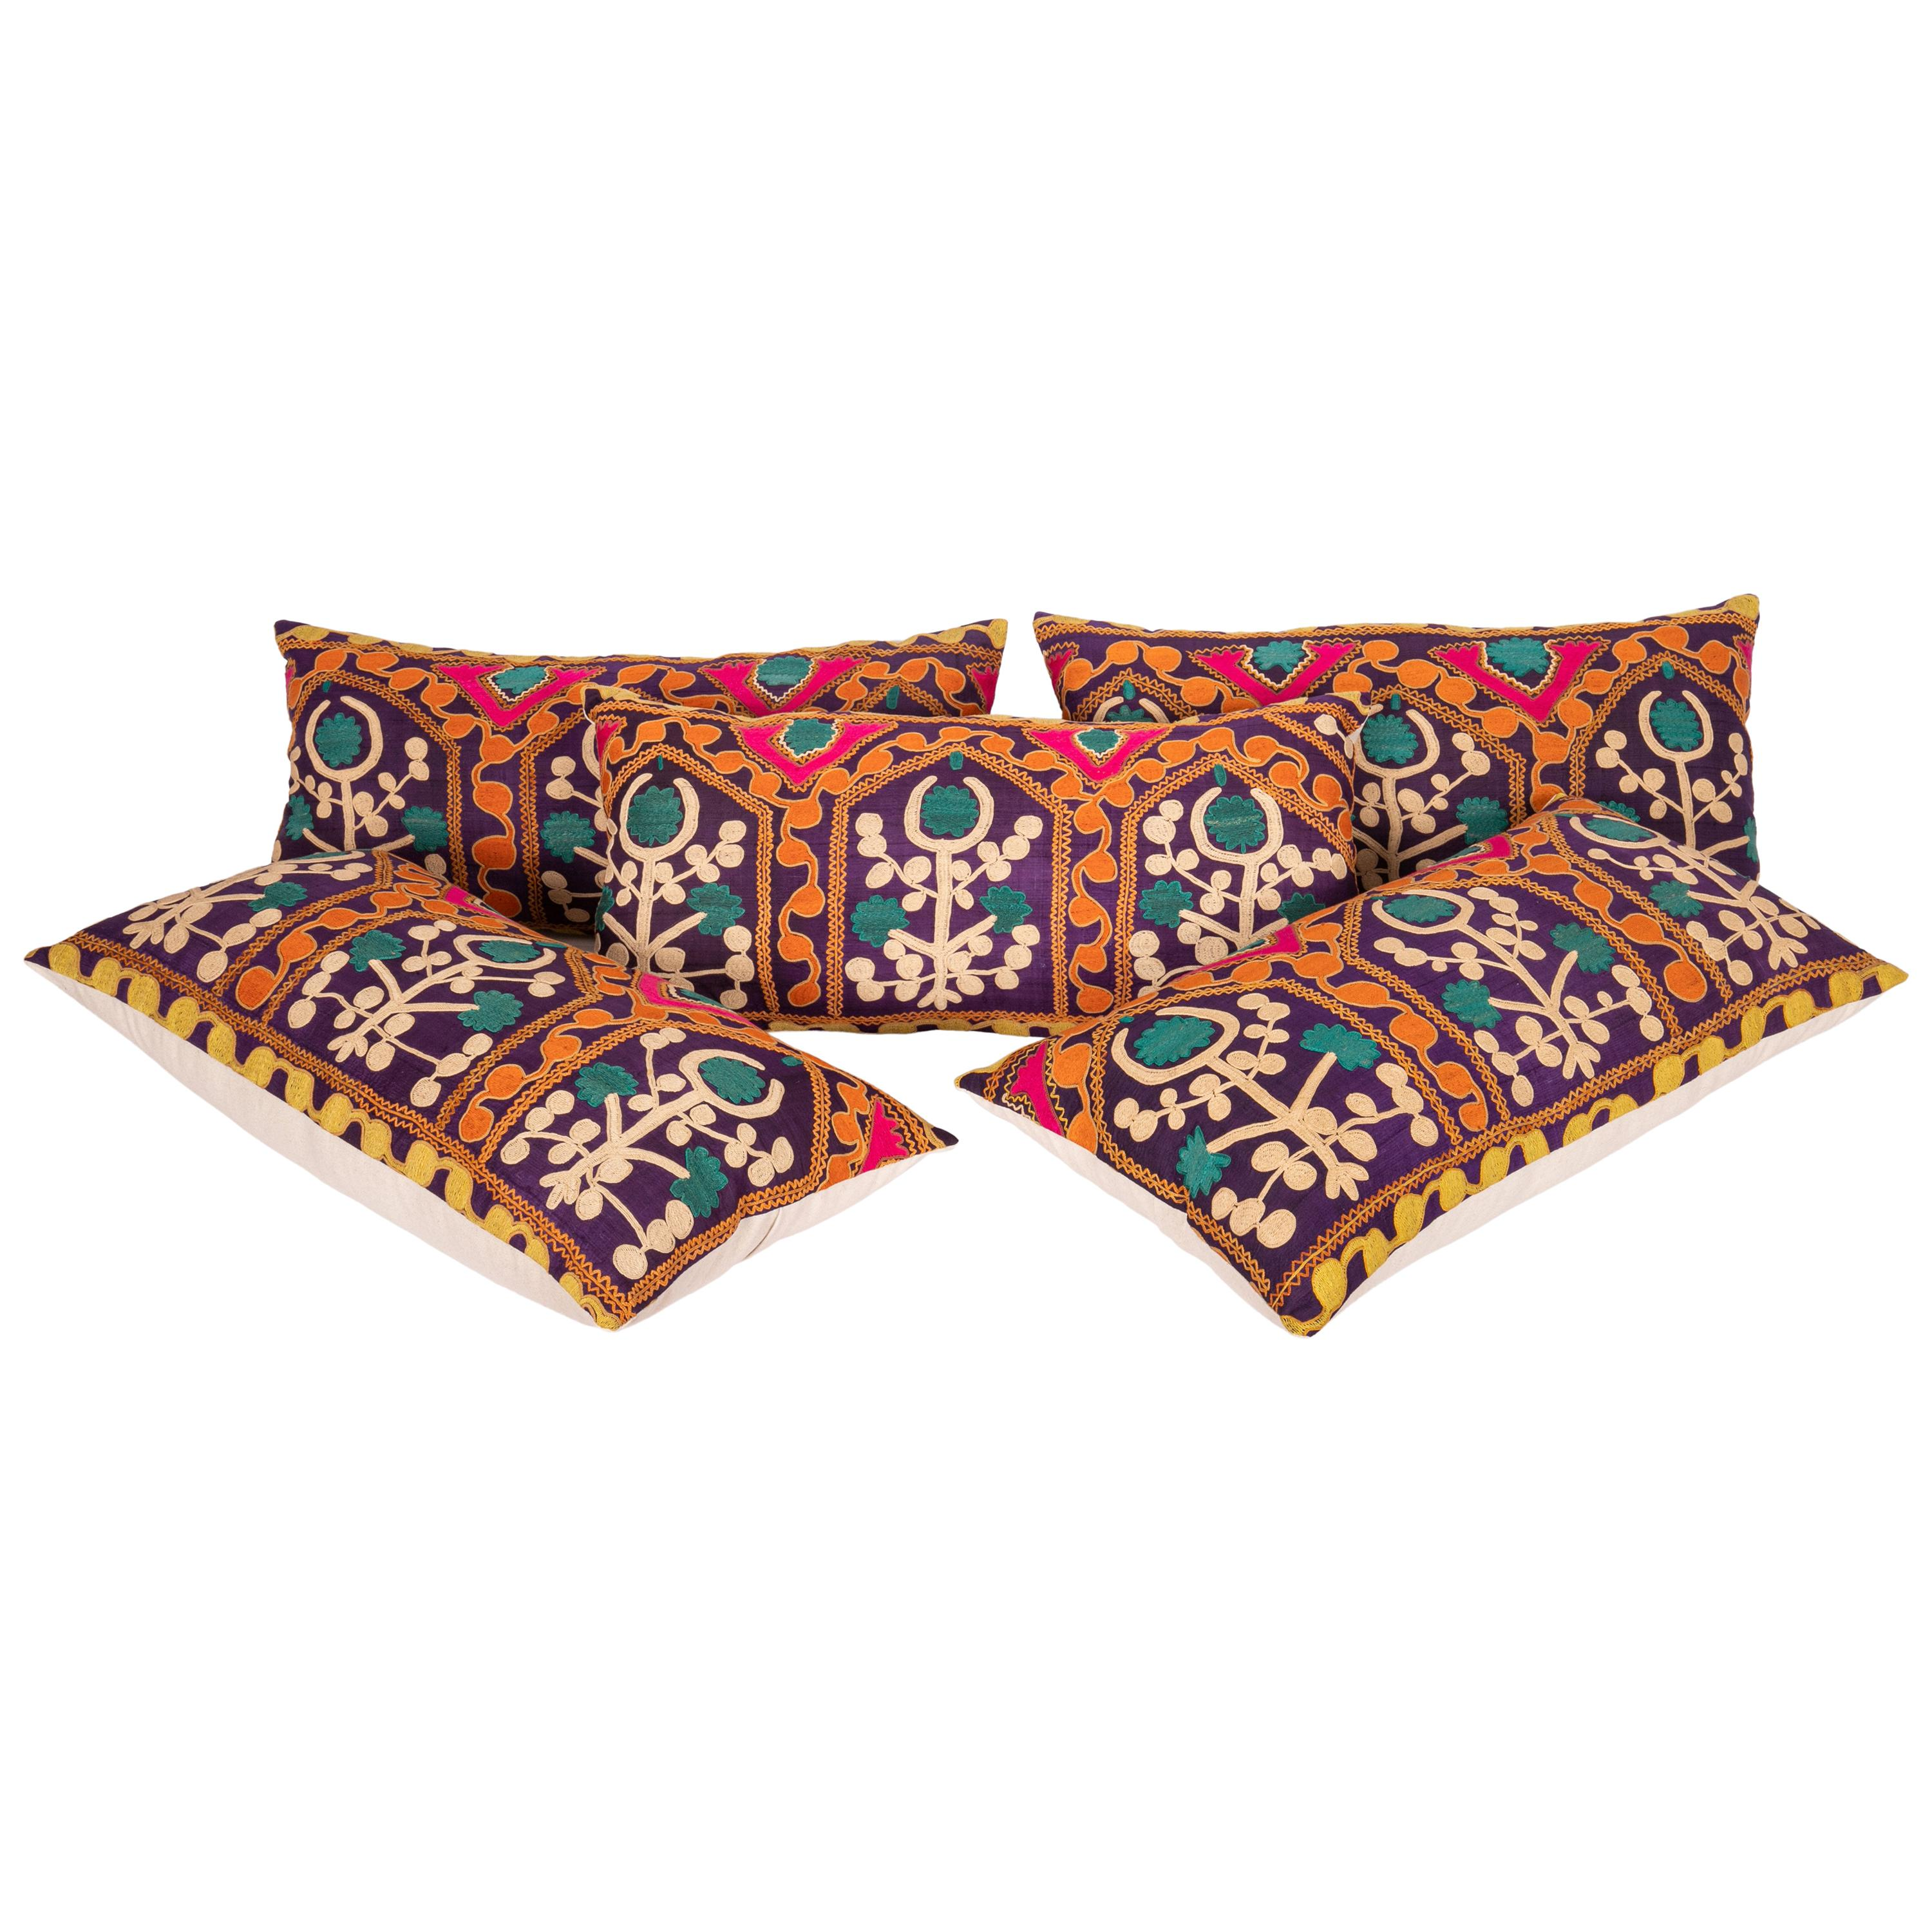 Old Silk Suzani Pillow Cases Made from an Early 20th Century Suzani